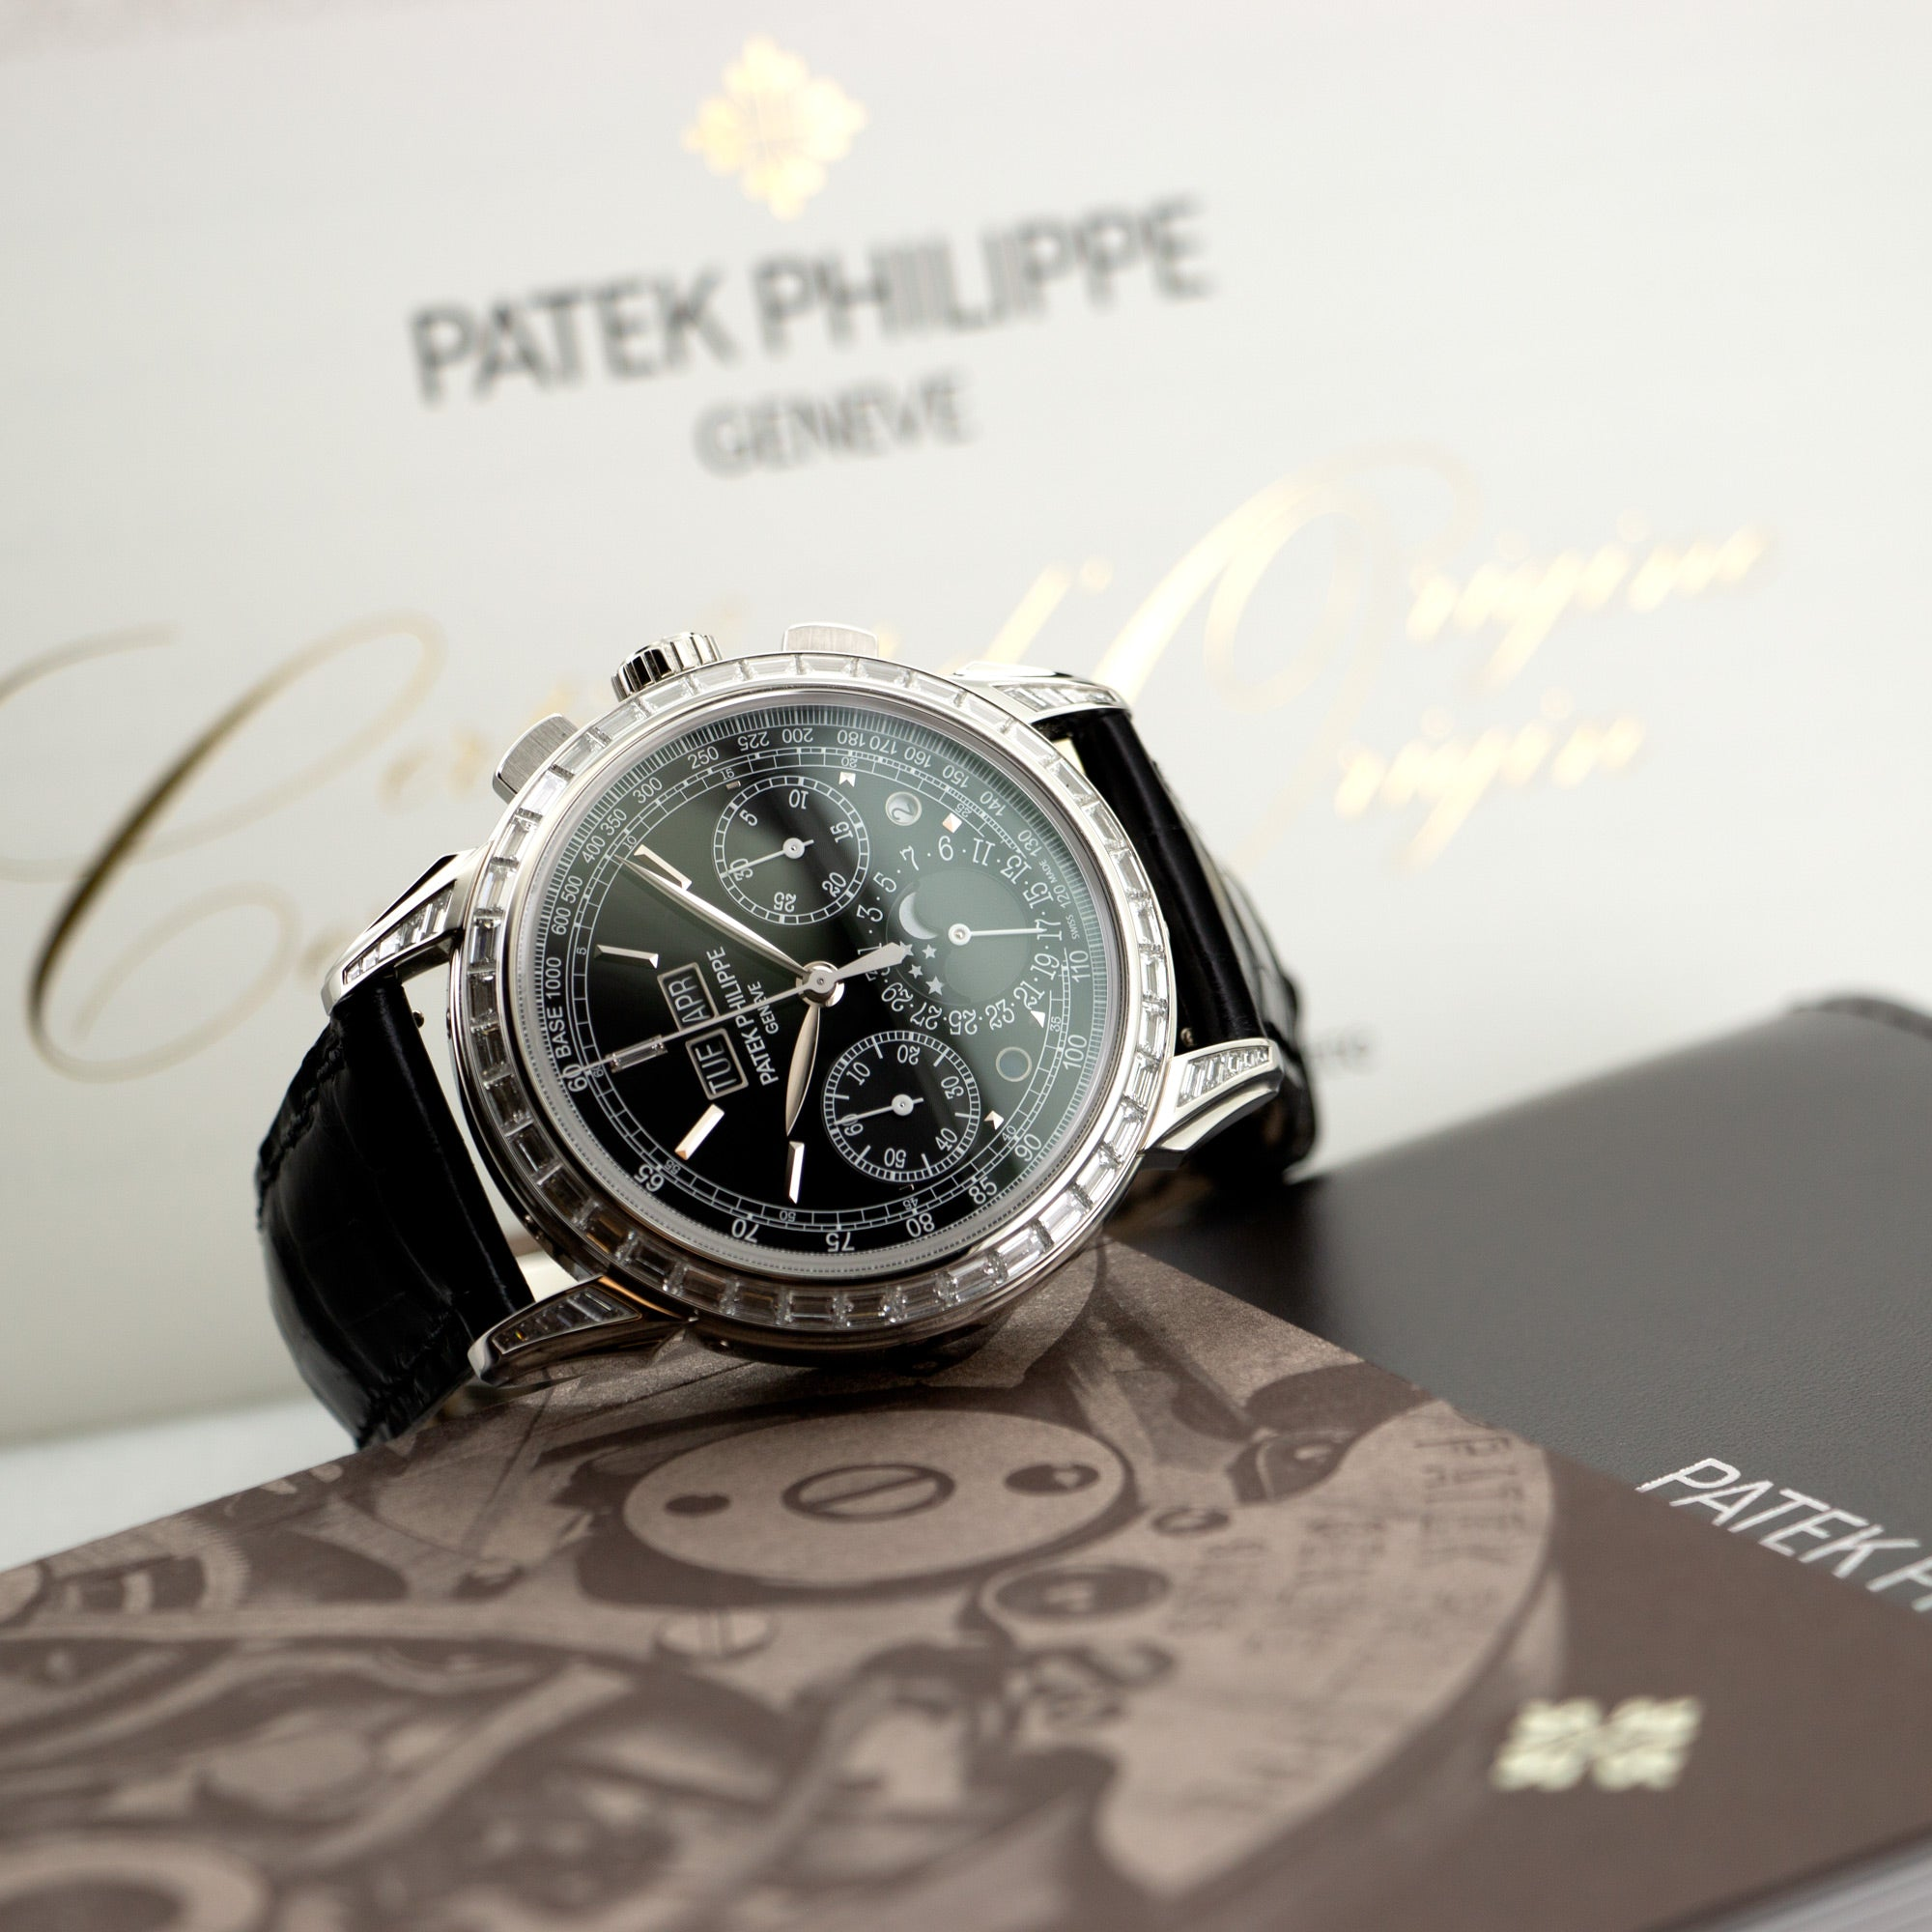 Patek Philippe Perpetual Calendar Chrono 5271 Platinum  Like New, Worn a Few Times Gents Platinum Black 40mm Manual 2017 Black Crocodile Box, Certificate, and Additional Solid Case Back